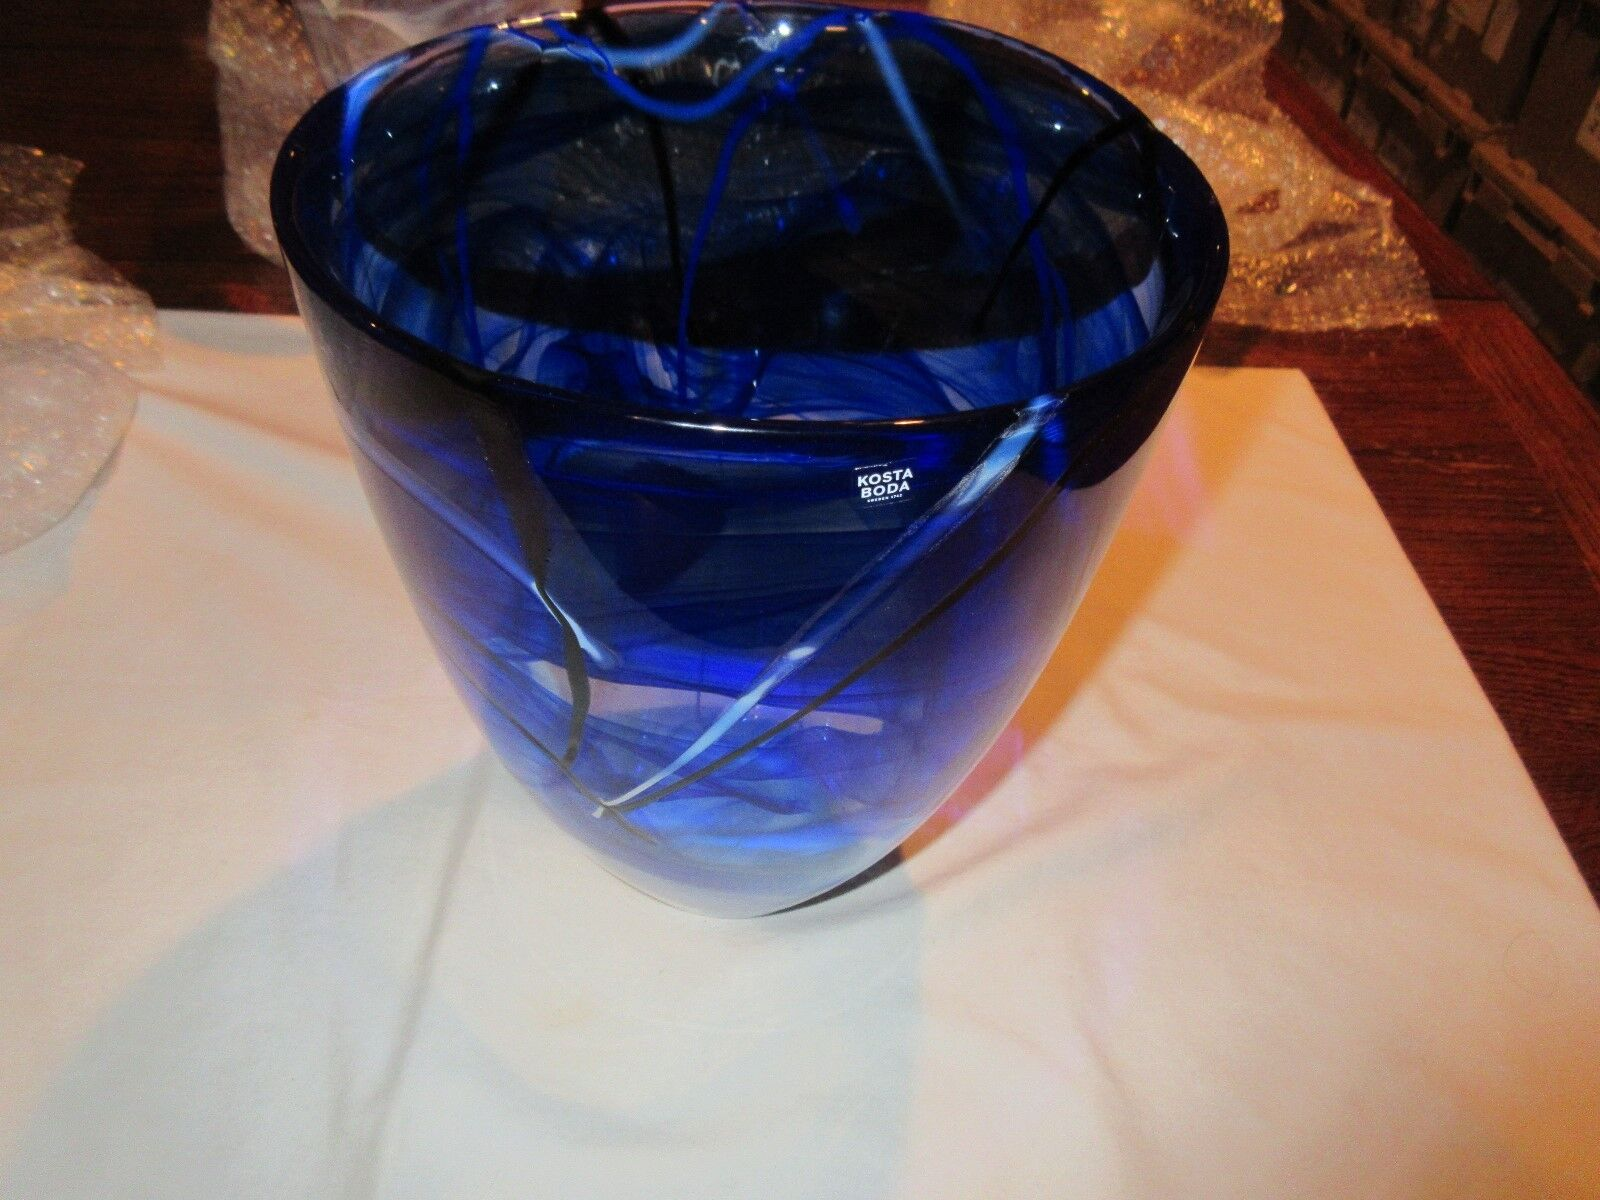 Glass, Kosta Boda, Large Dark Blue With Light Blue Acce